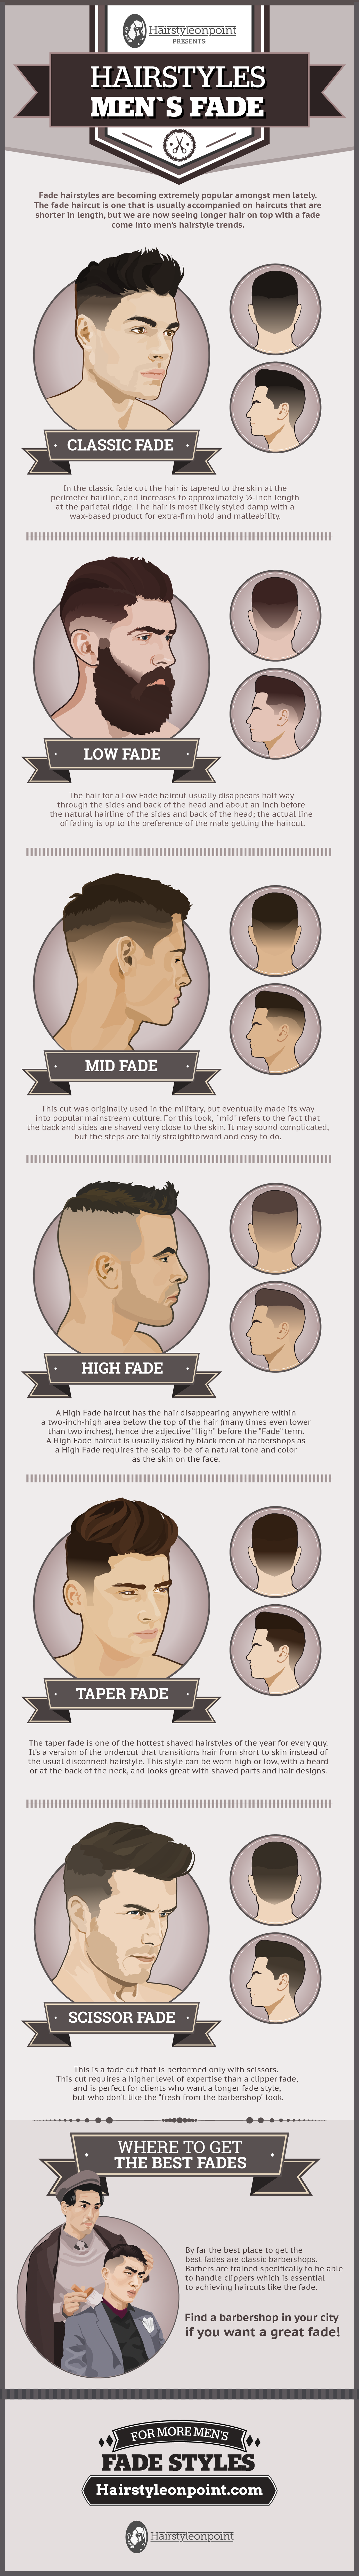 Mens Hairstyles A Simple Guide To Popular And Modern Fades